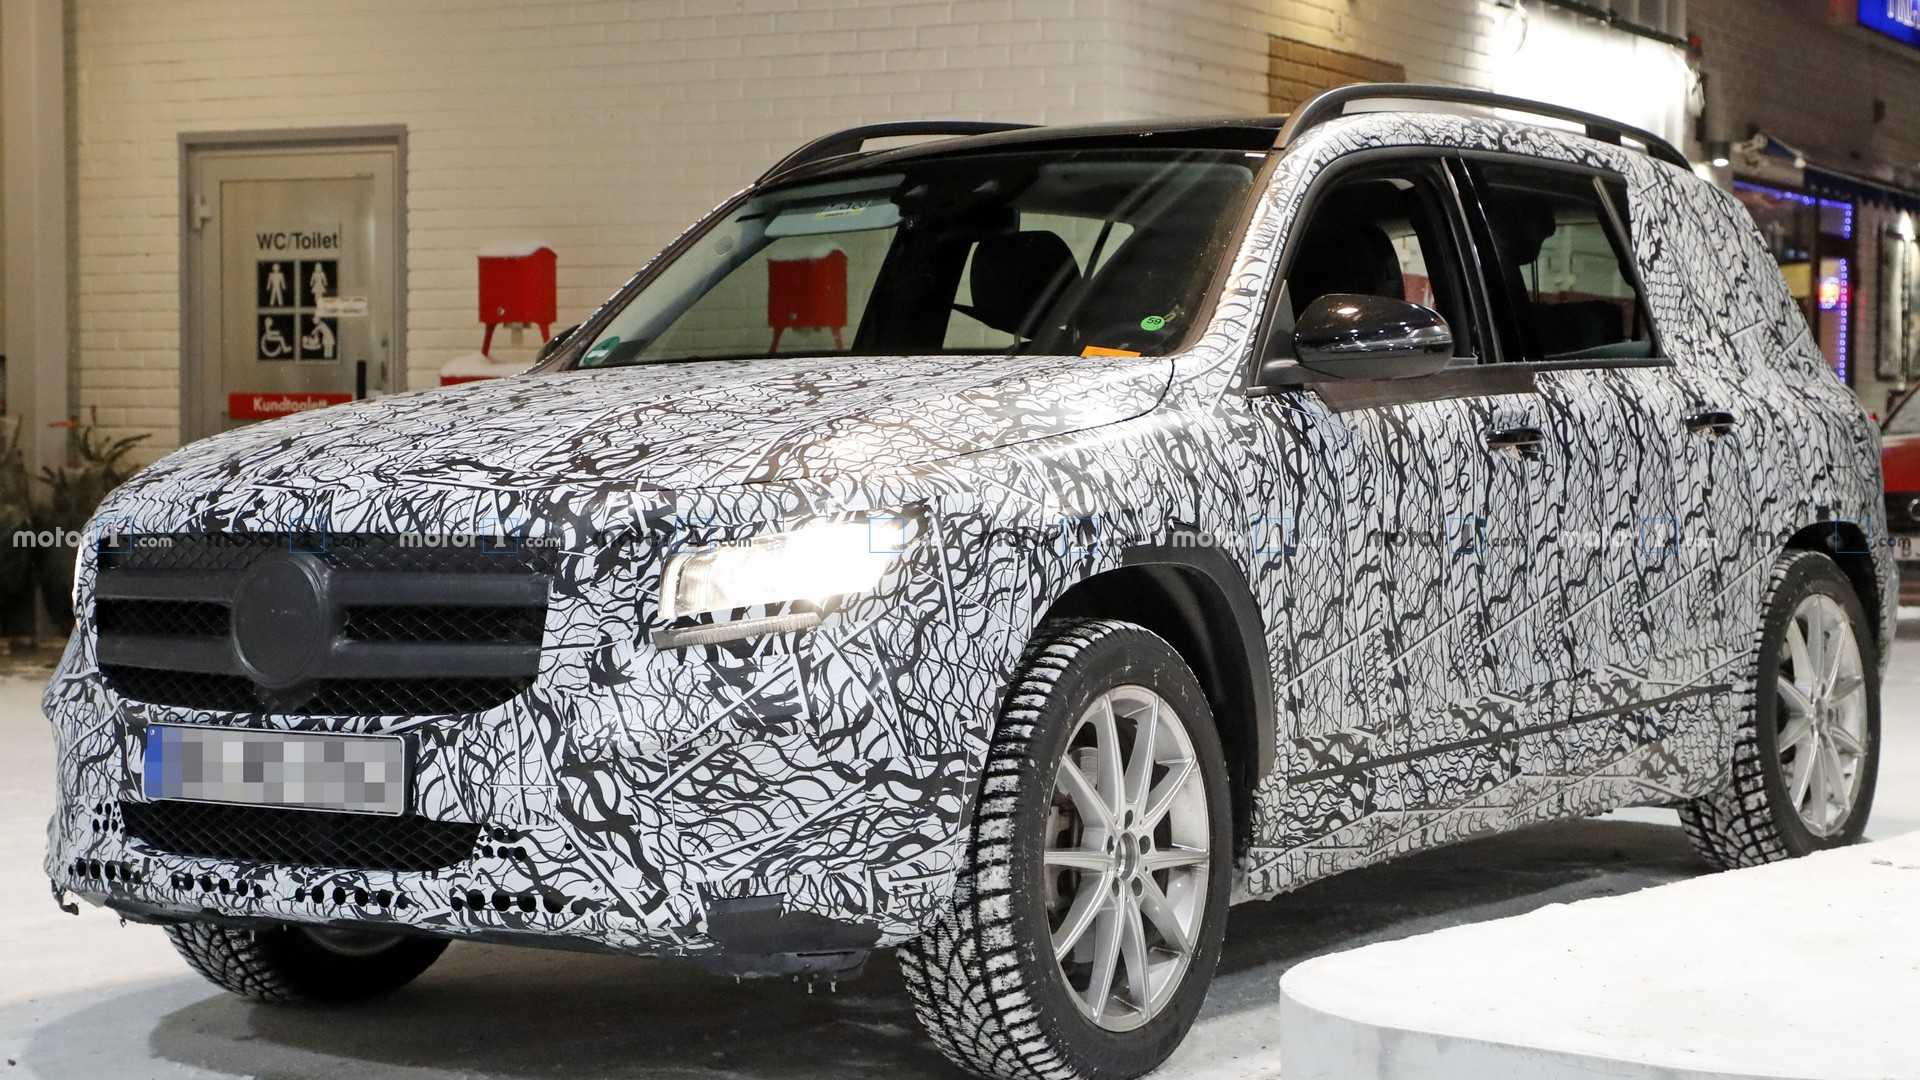 2020 Mercedes Glb Spied Inside And Out At Gas Station